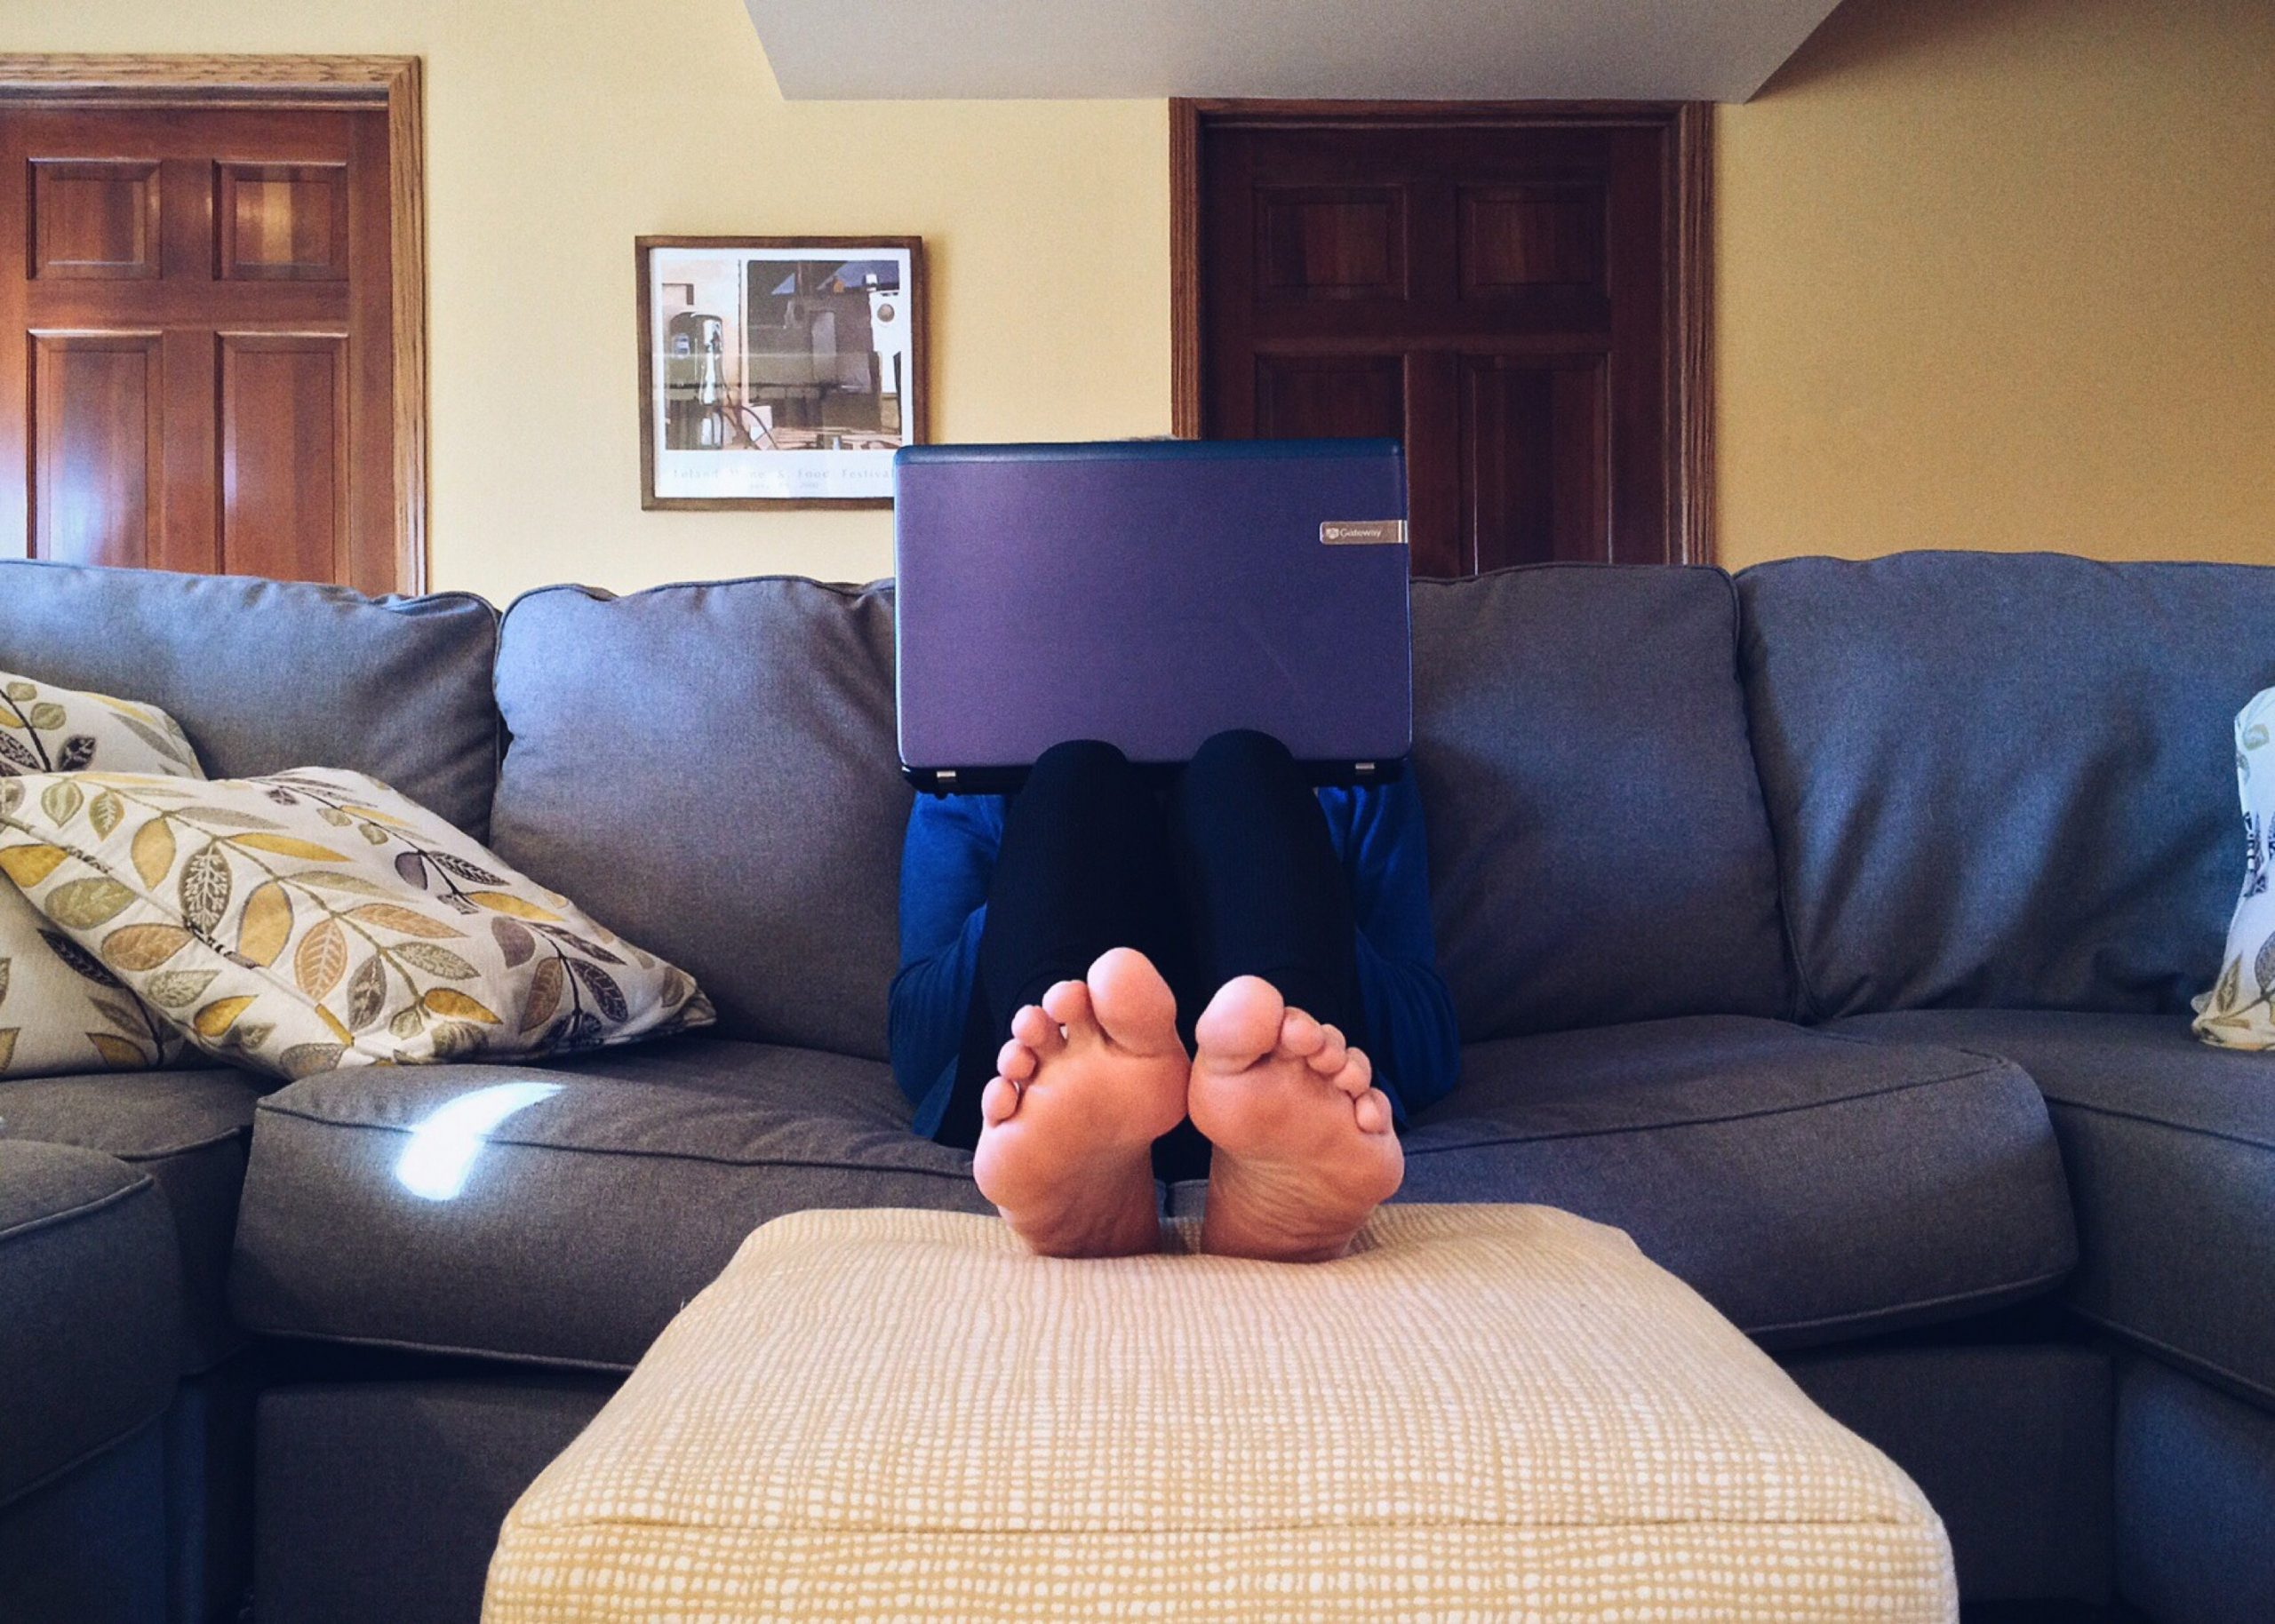 A barefoot person sits on a sofa with a laptop obscuring their face.